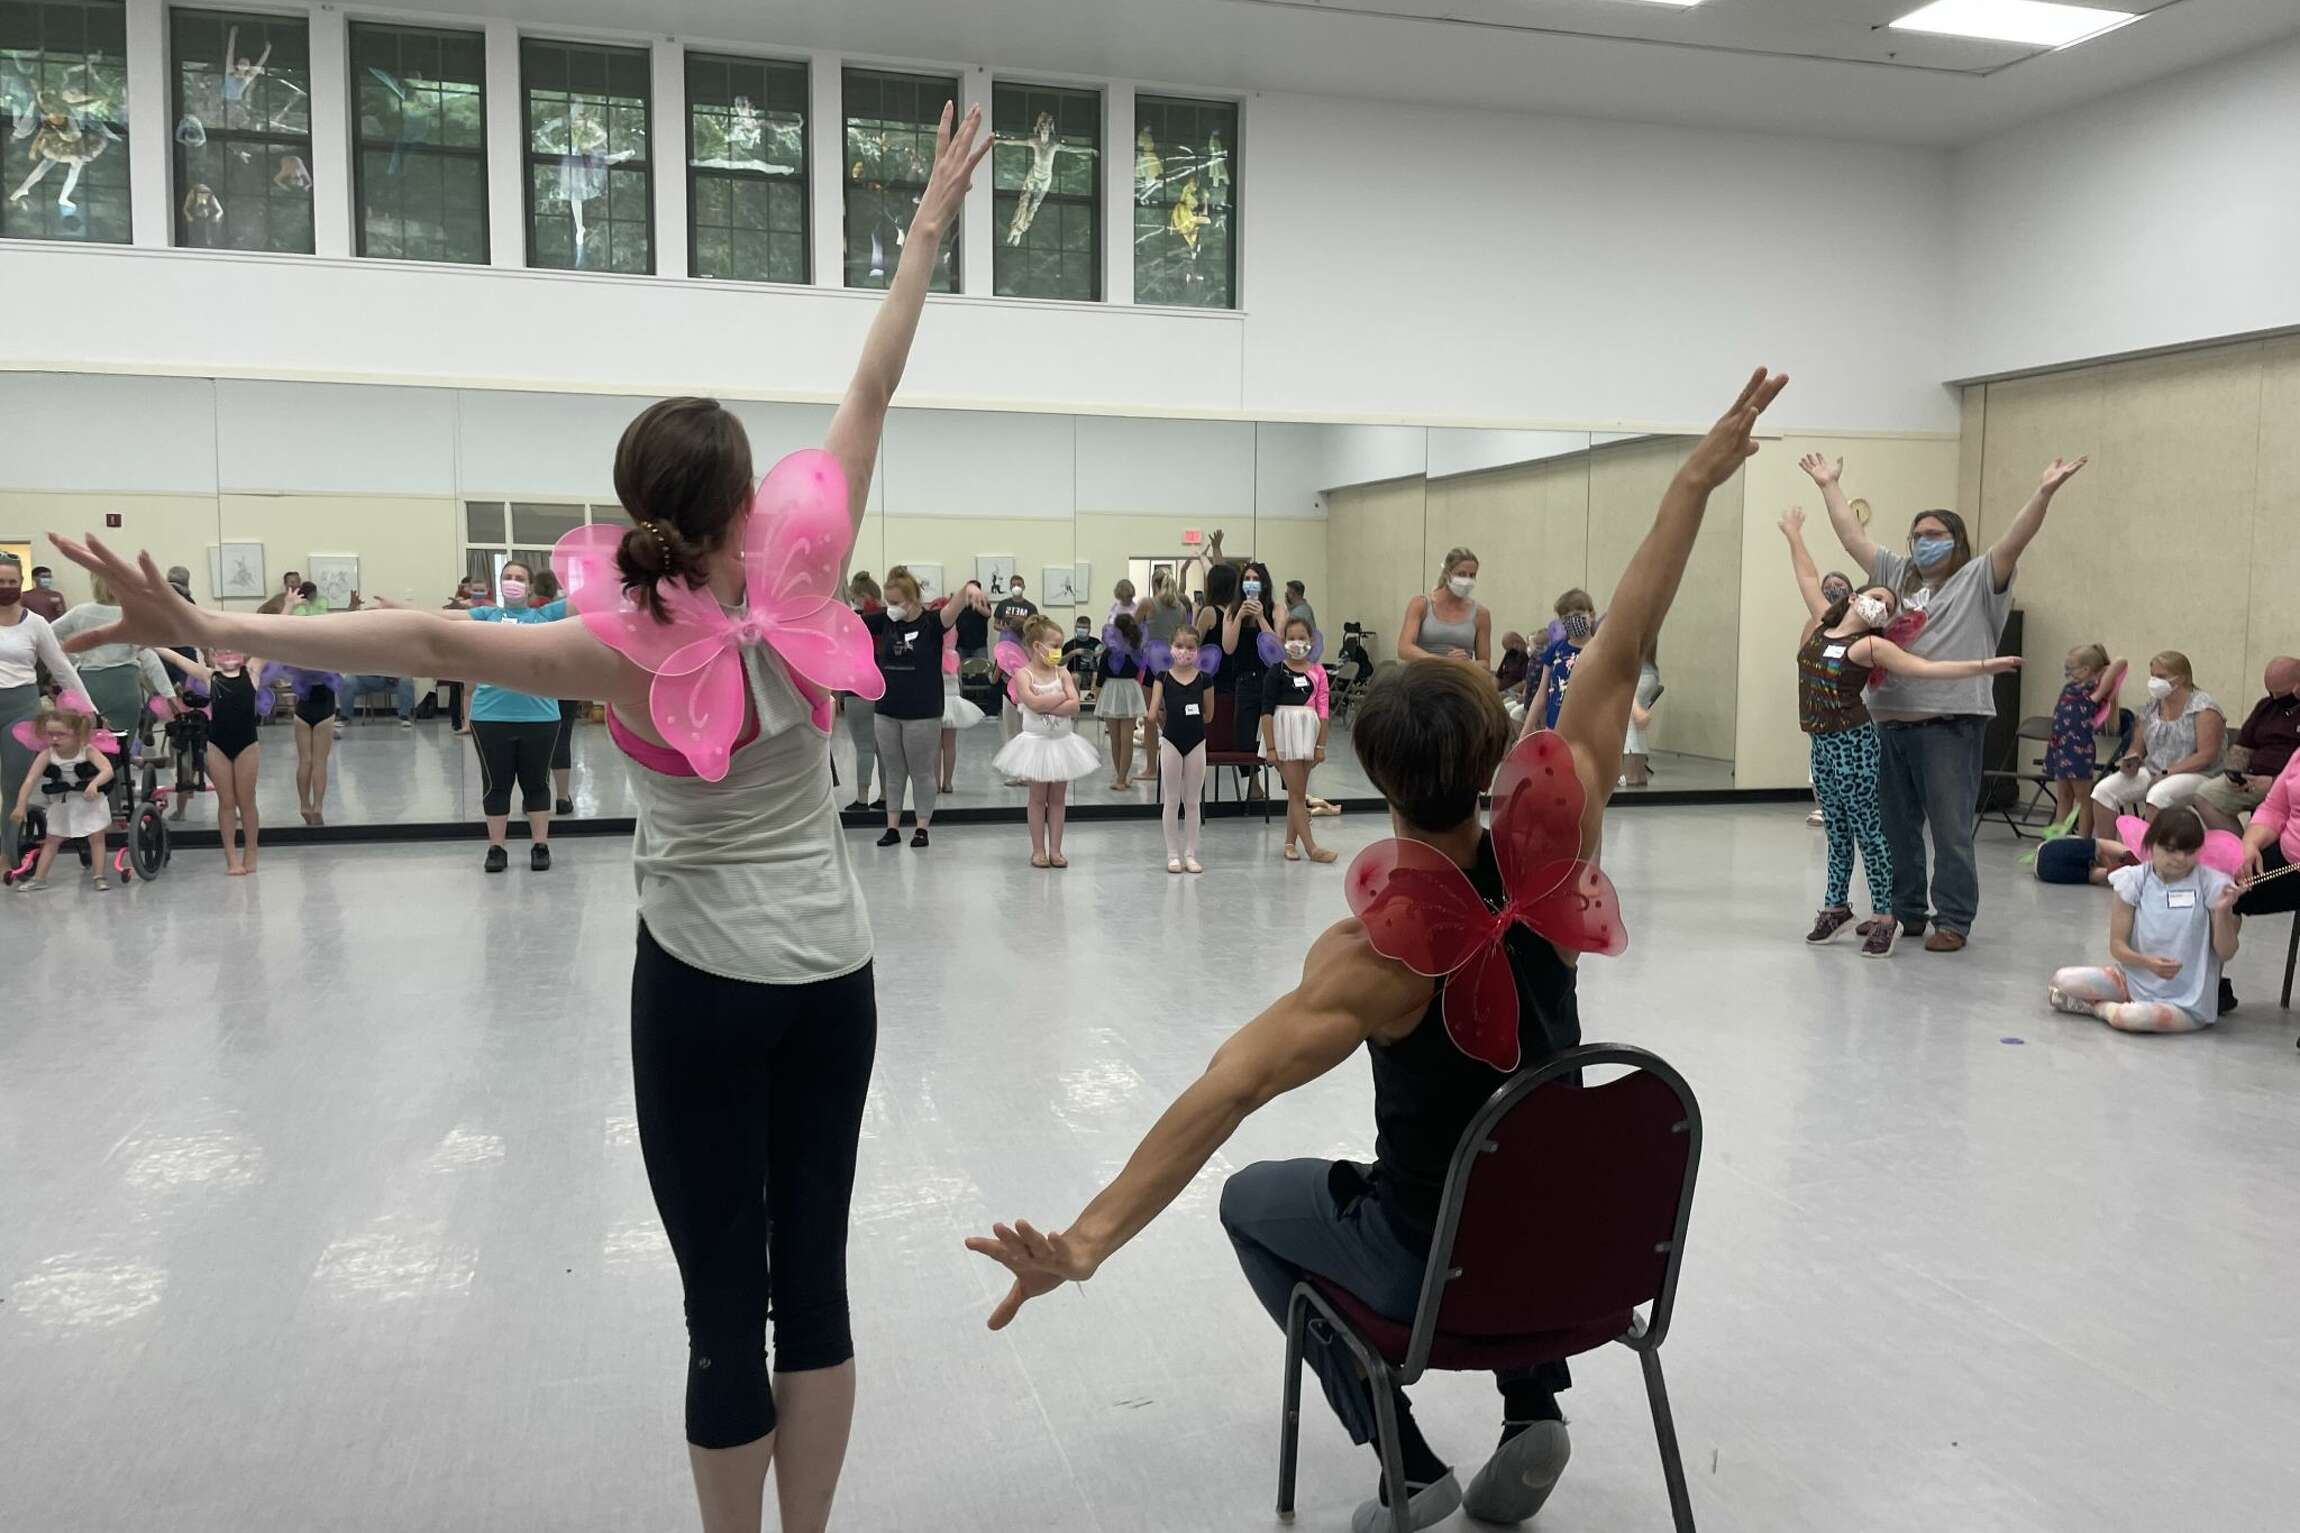 SPAC education program shows that dance is for everyone